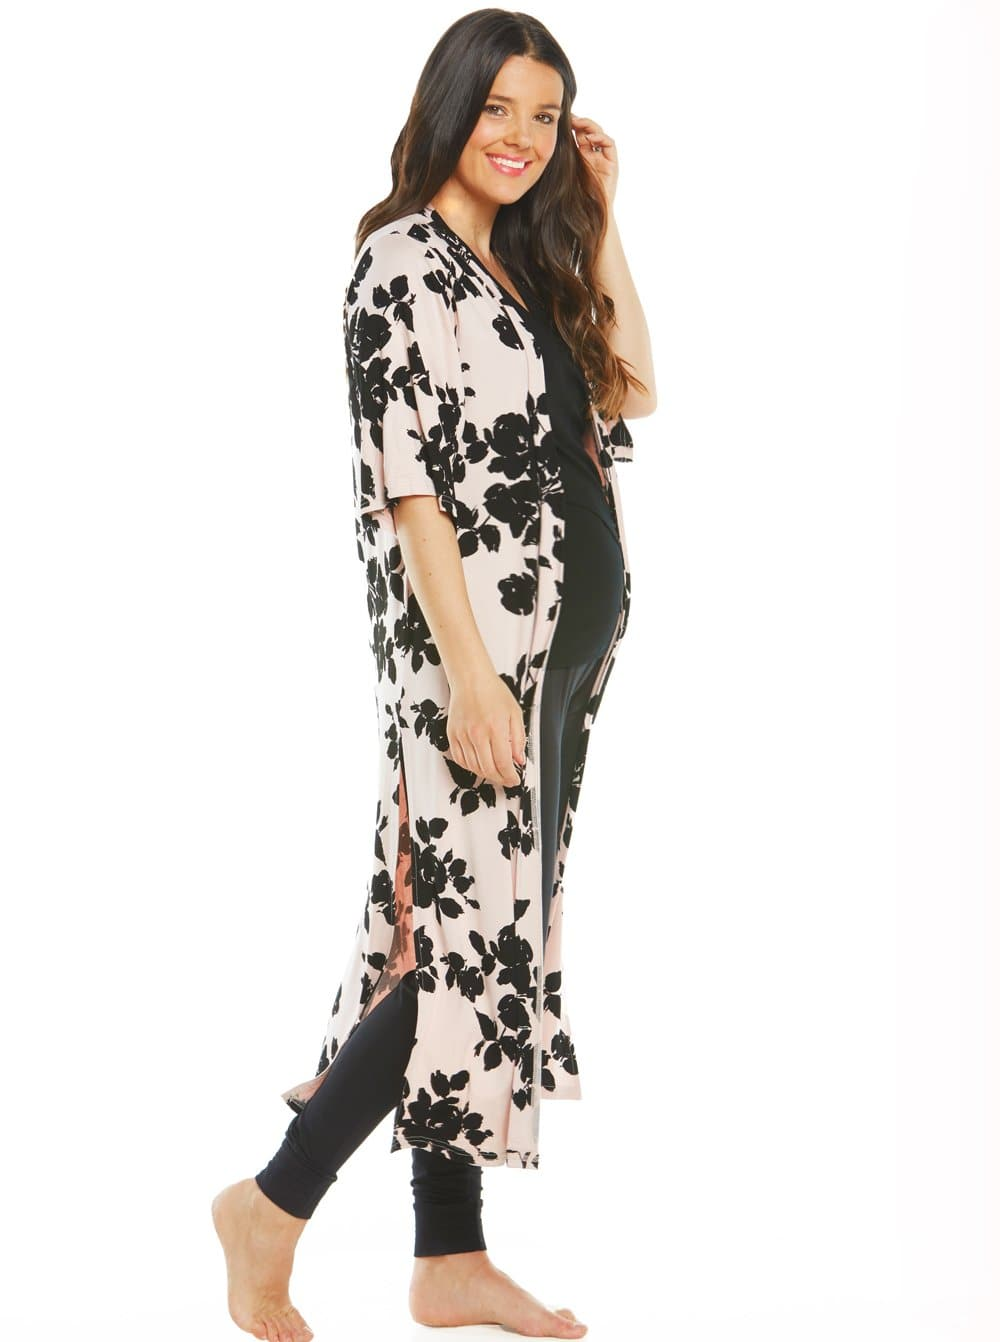 Maternity Essential Nursing 3 Piece Outfit - Black Floral